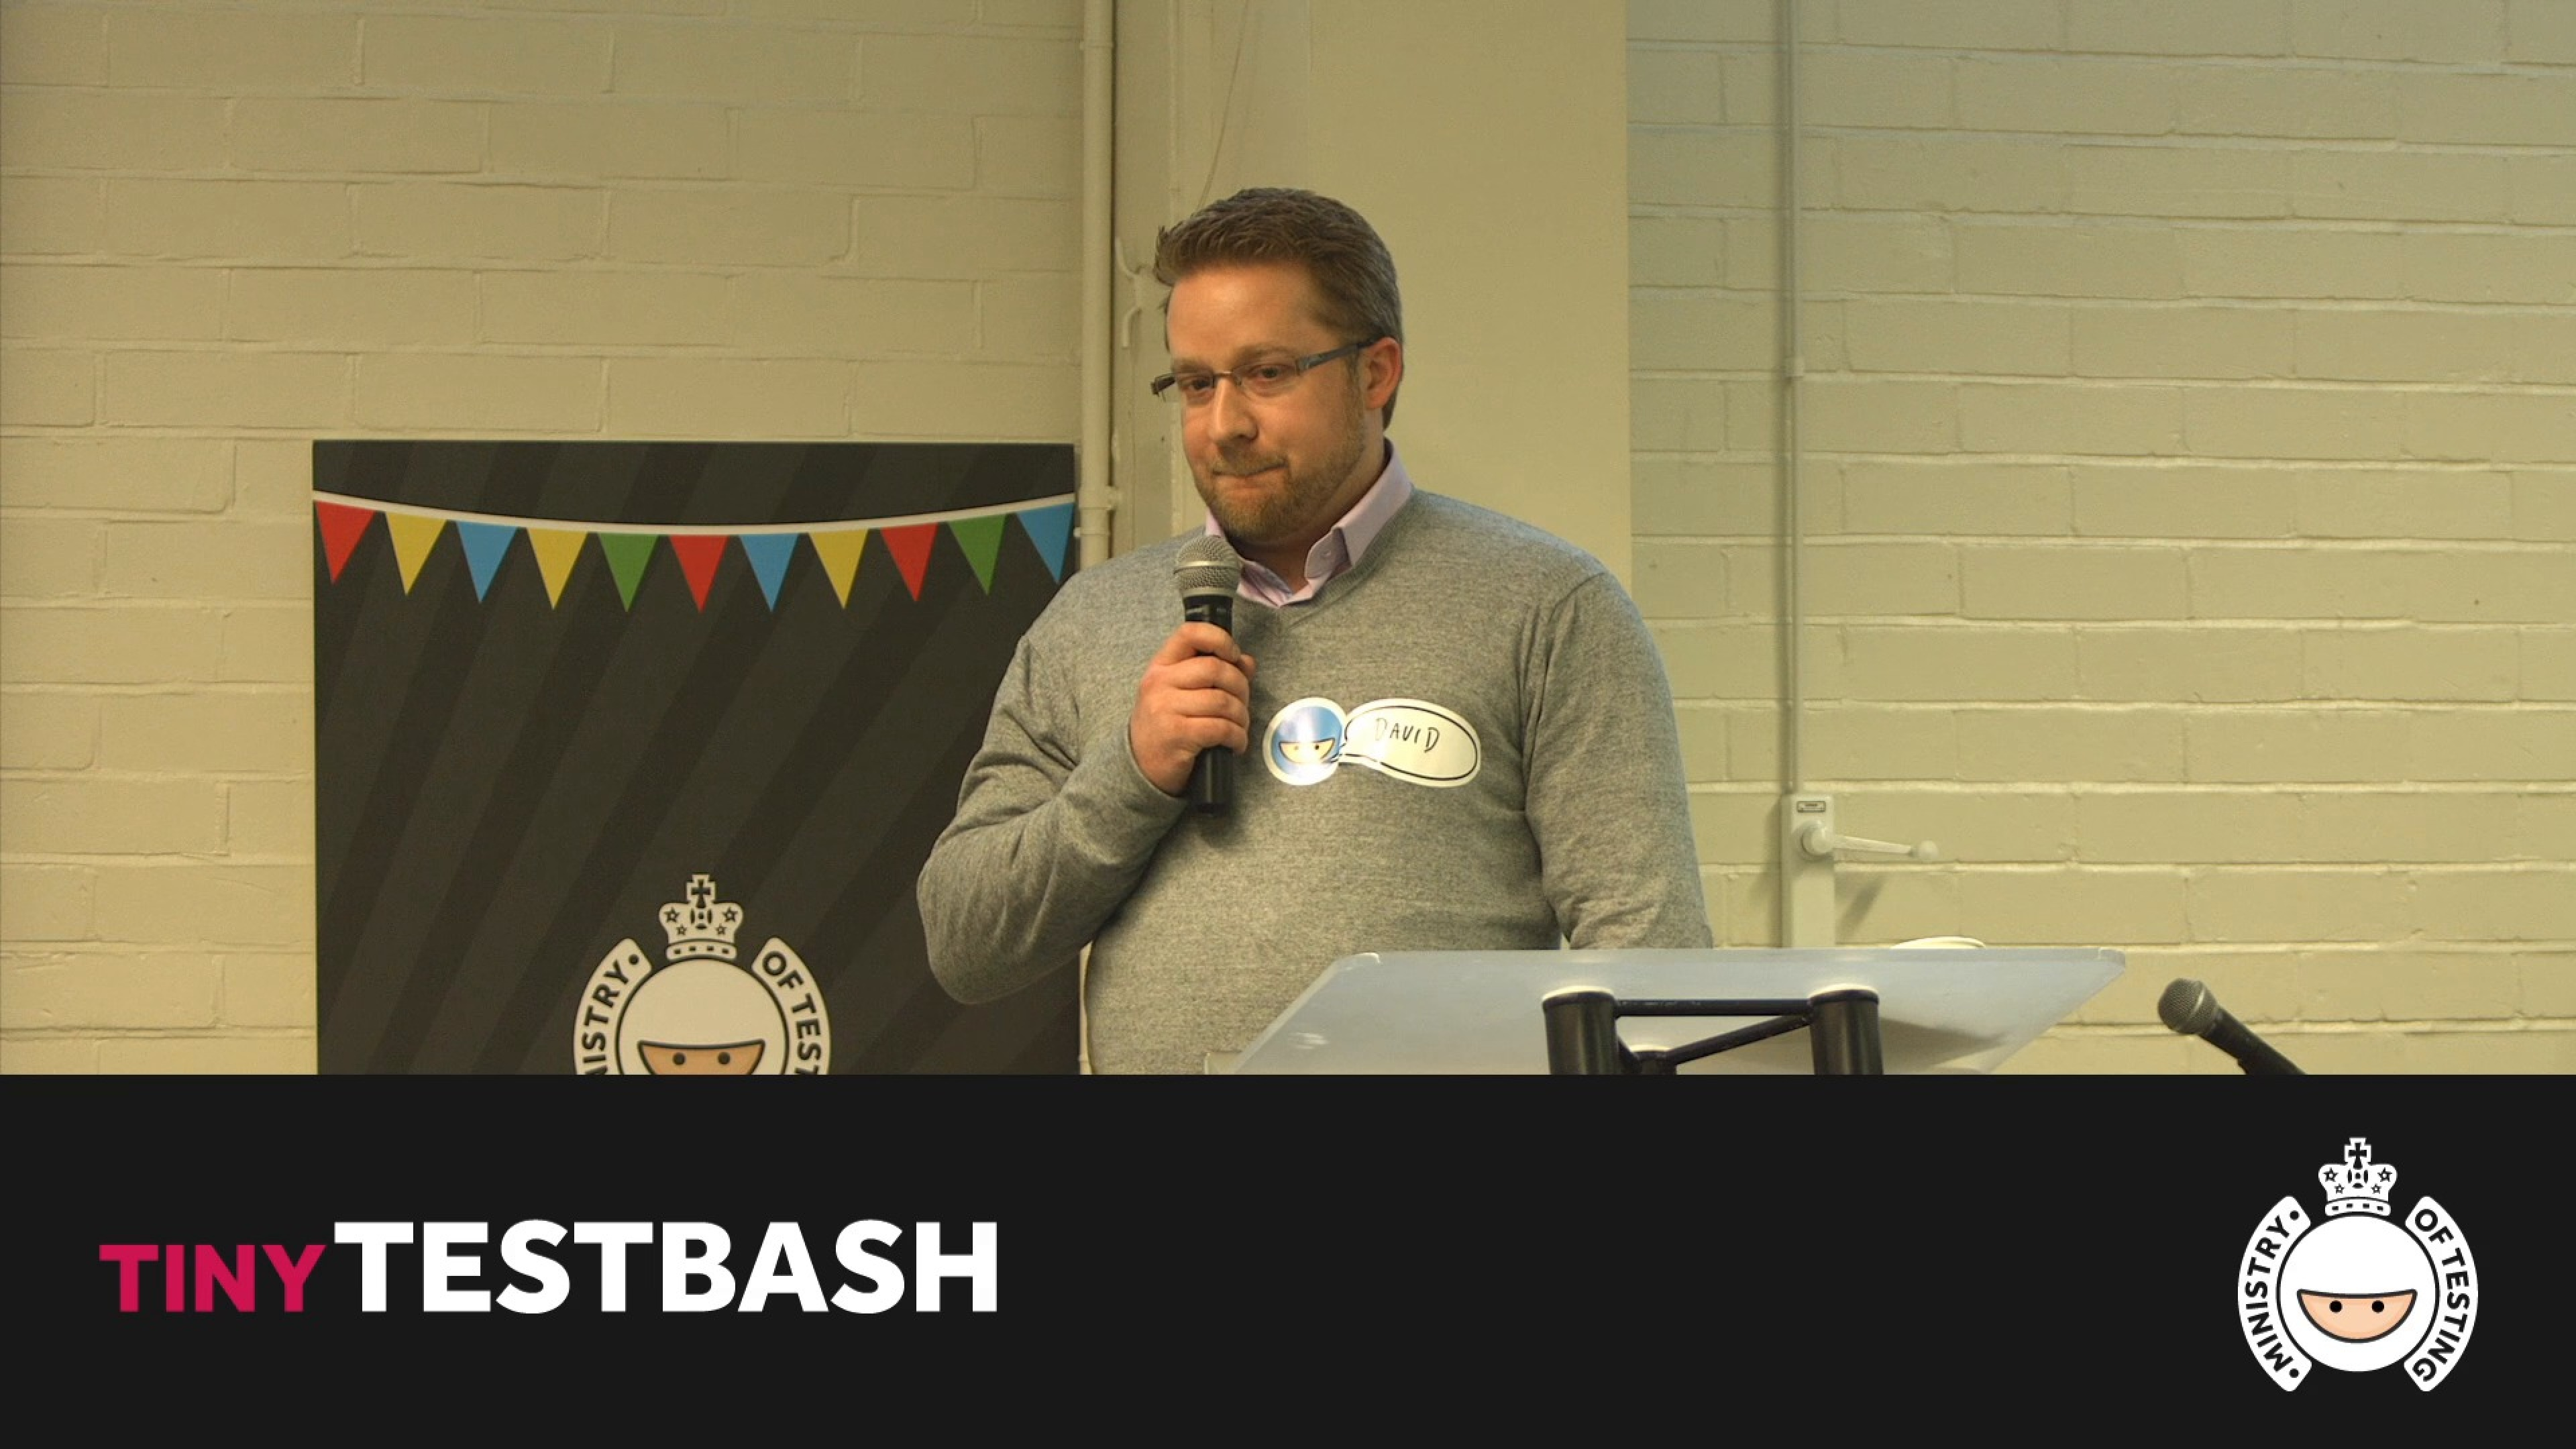 99 Second Talks - TinyTestBash 2015